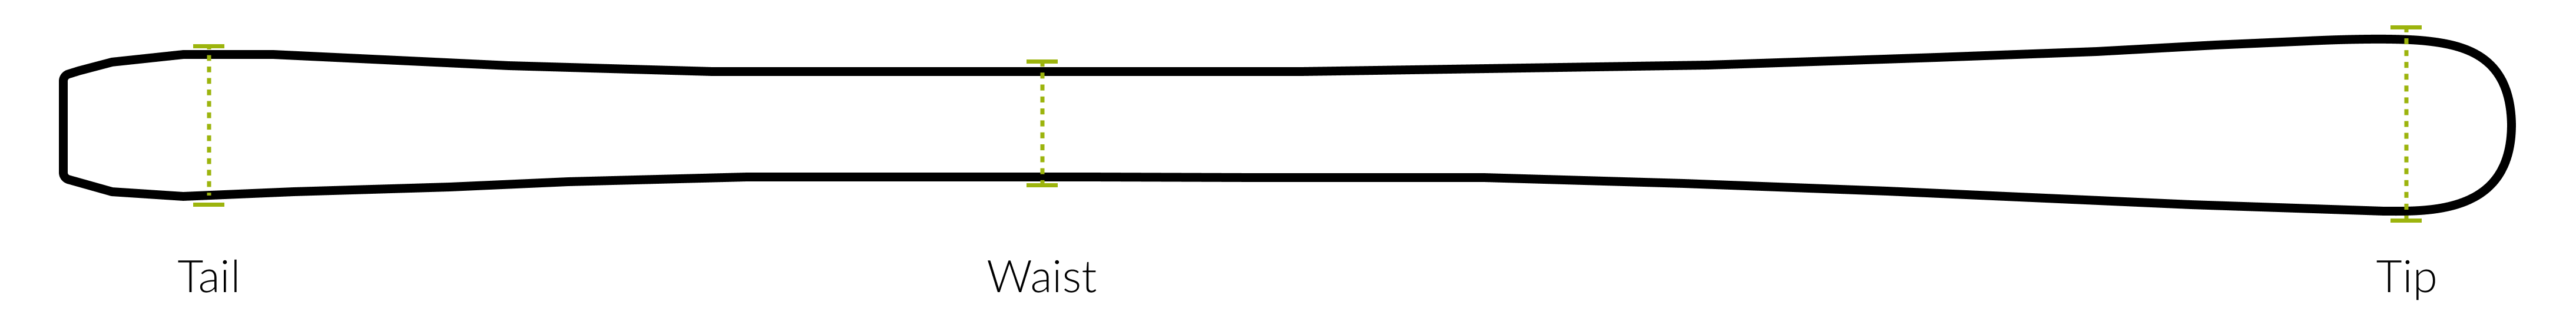 allmountain-frontside.png